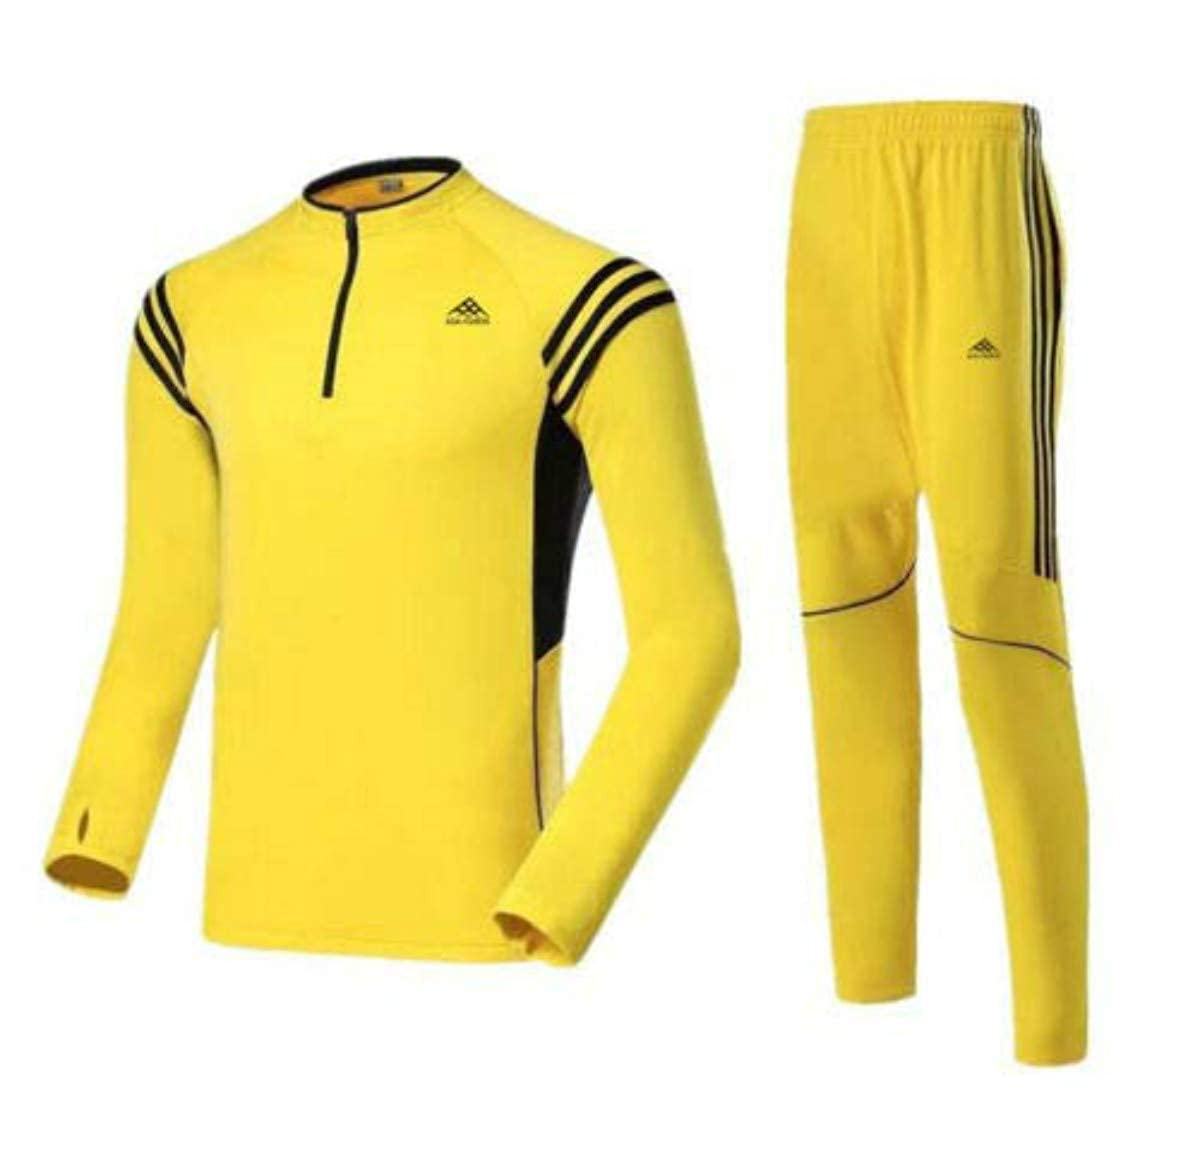 ADA-XSHION Men Tracksuit Sport Long SLV Shirt Jacket Suit Sets TrousersTop Pants Jogging